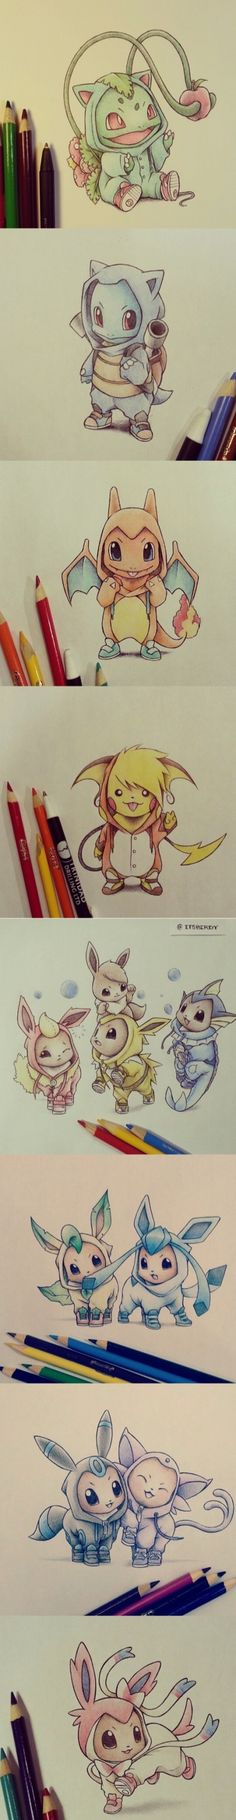 cute pokemon:)